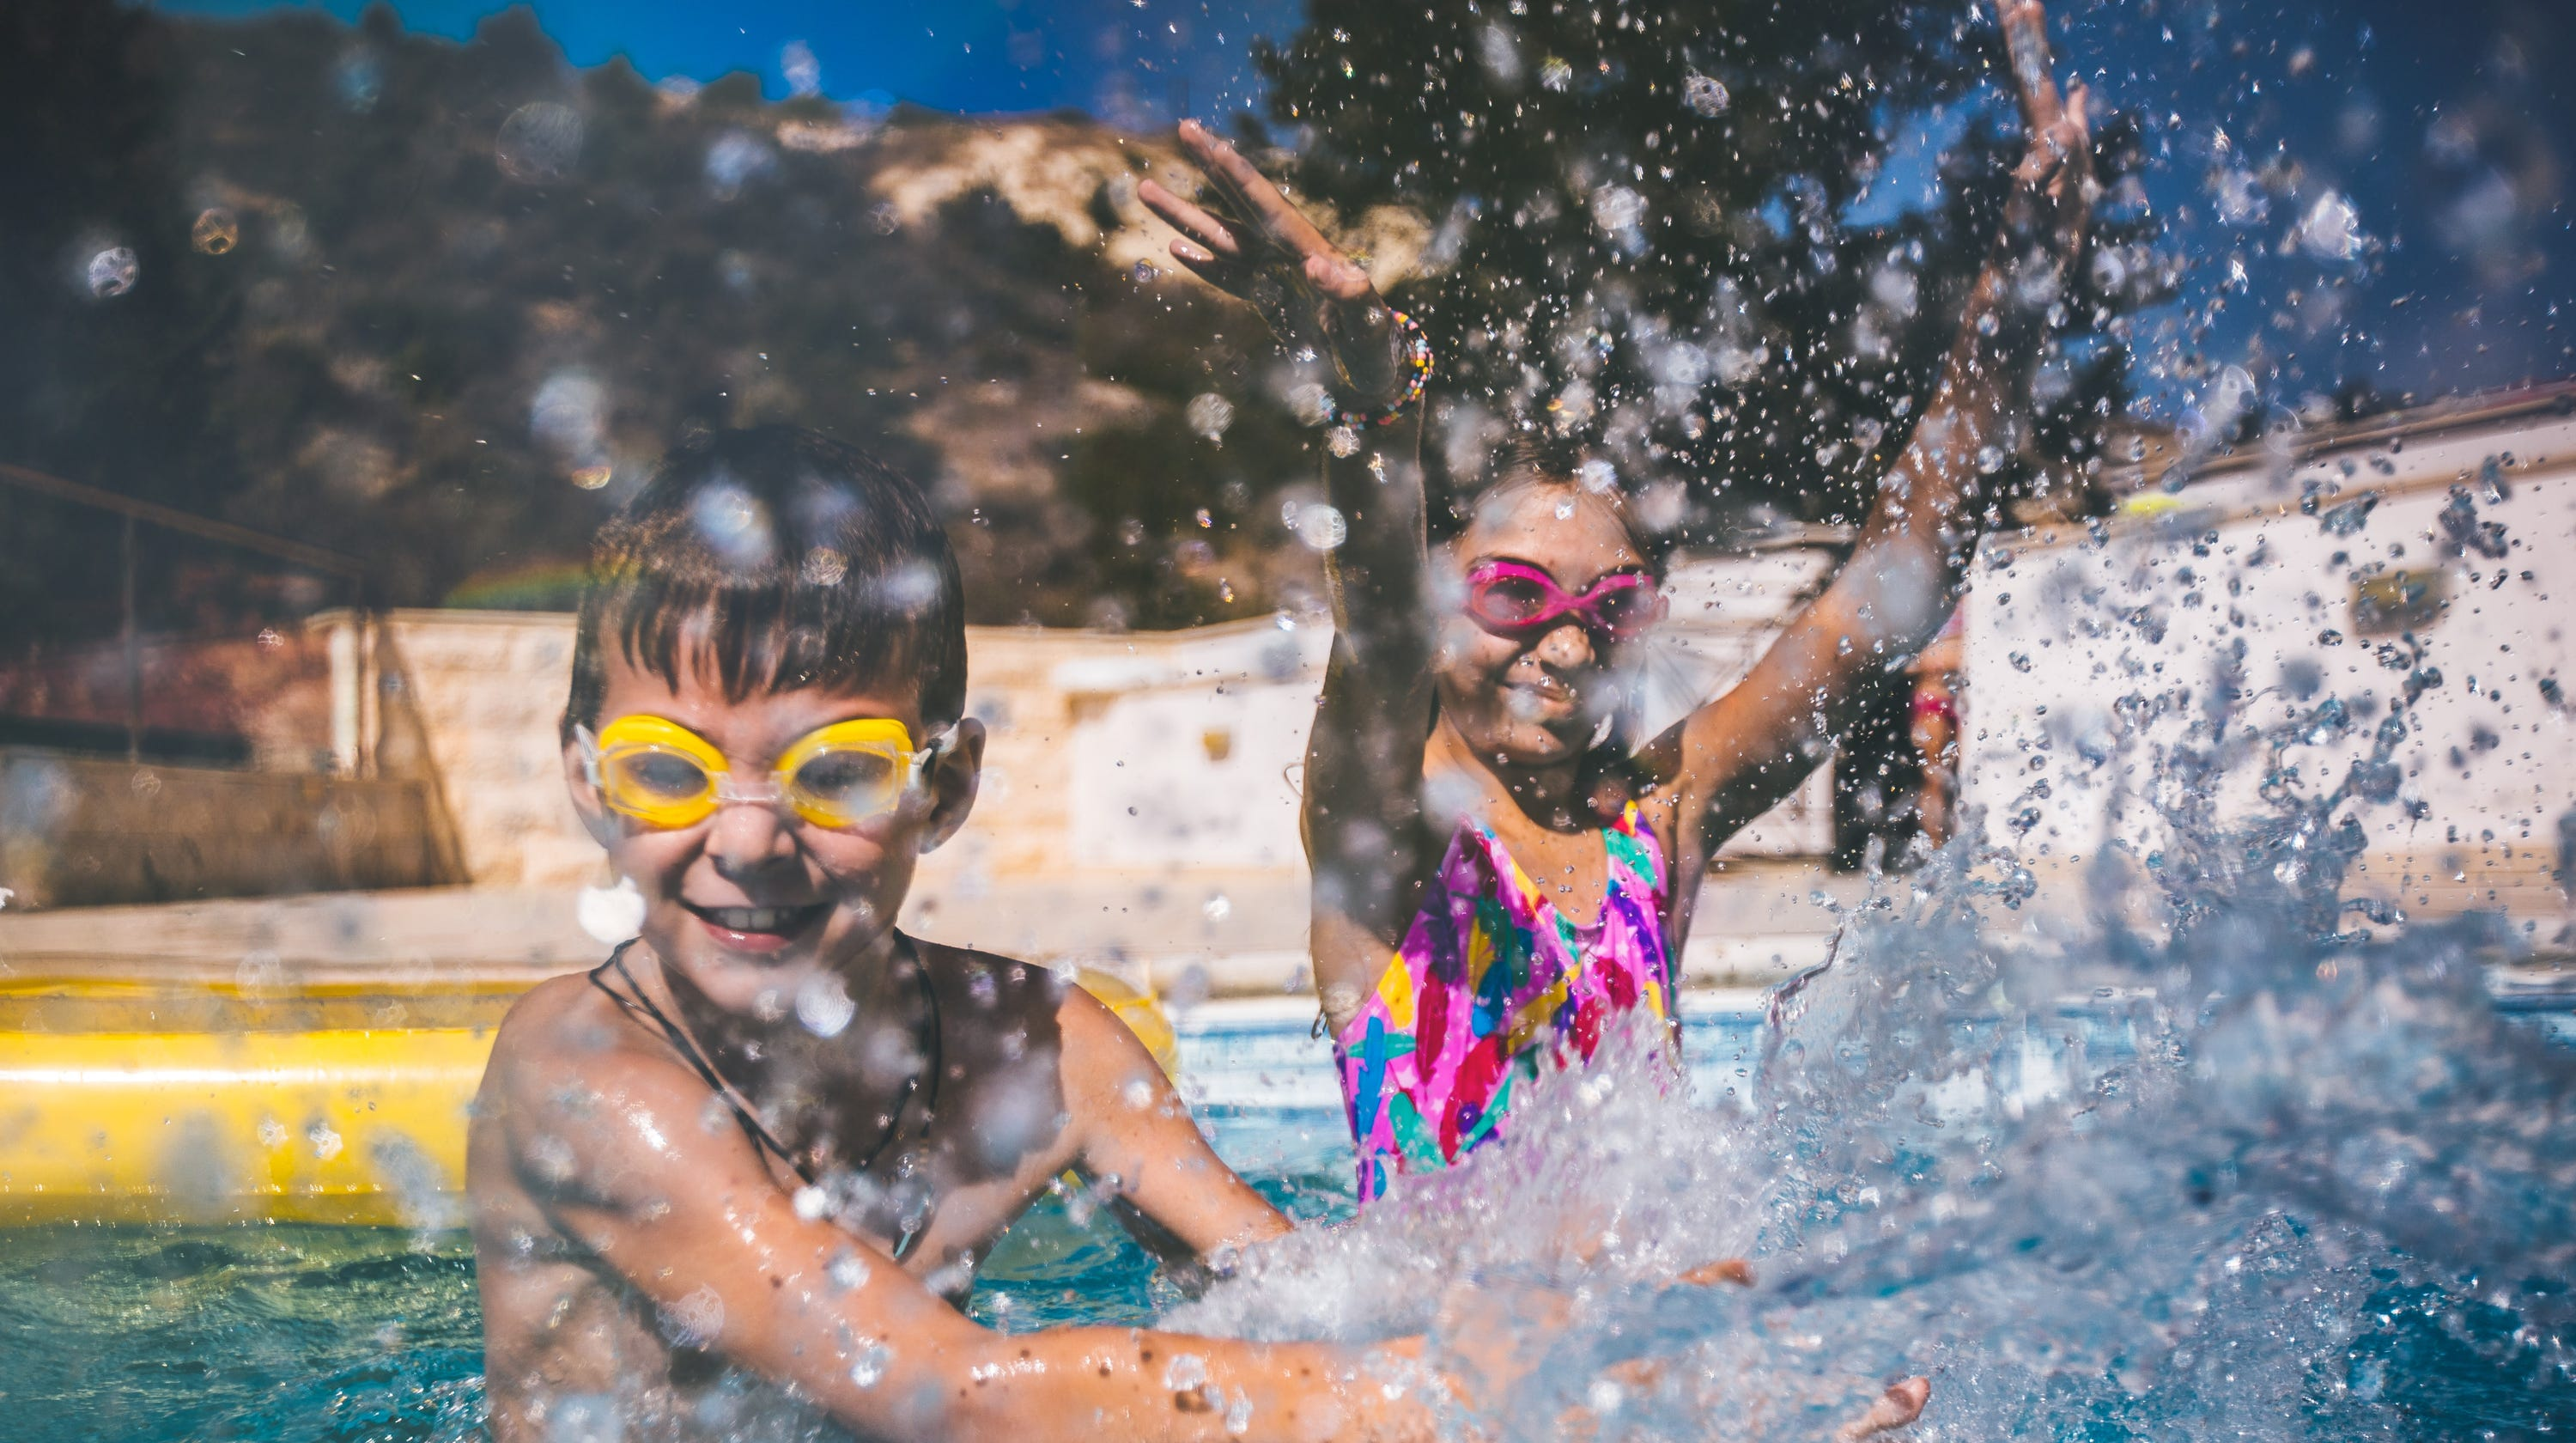 Swimming pool database shows how safe, clean your local pool is